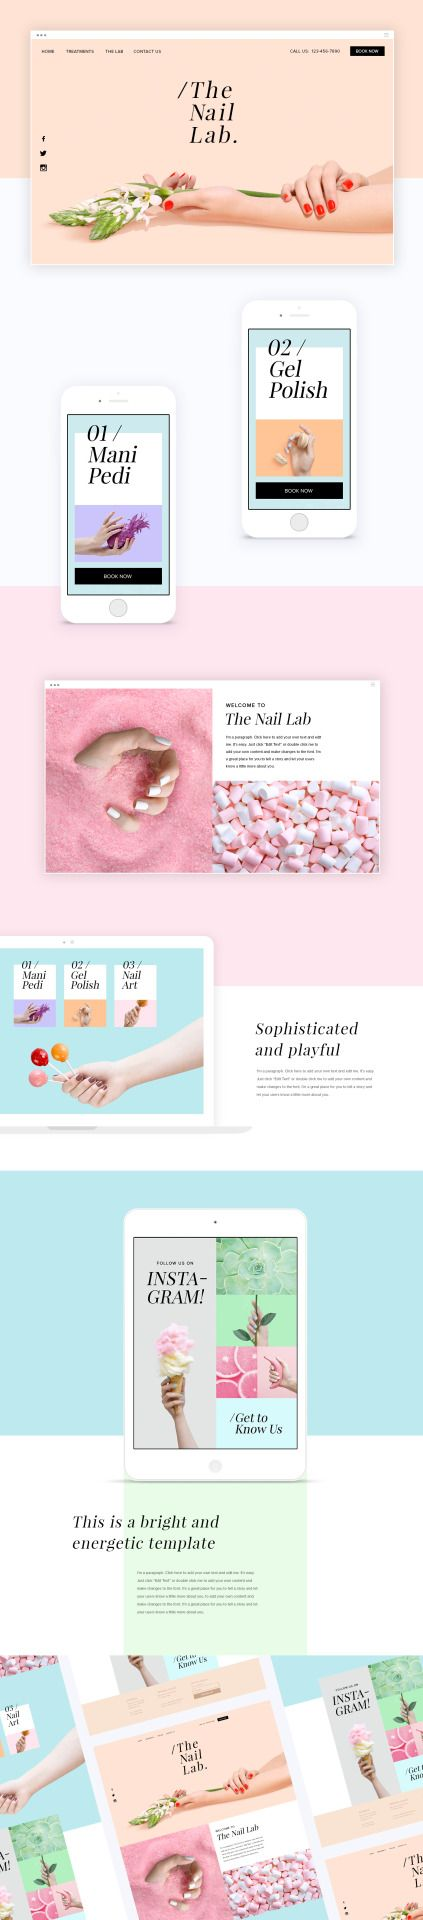 The Nail Lab by Wix Studio 21